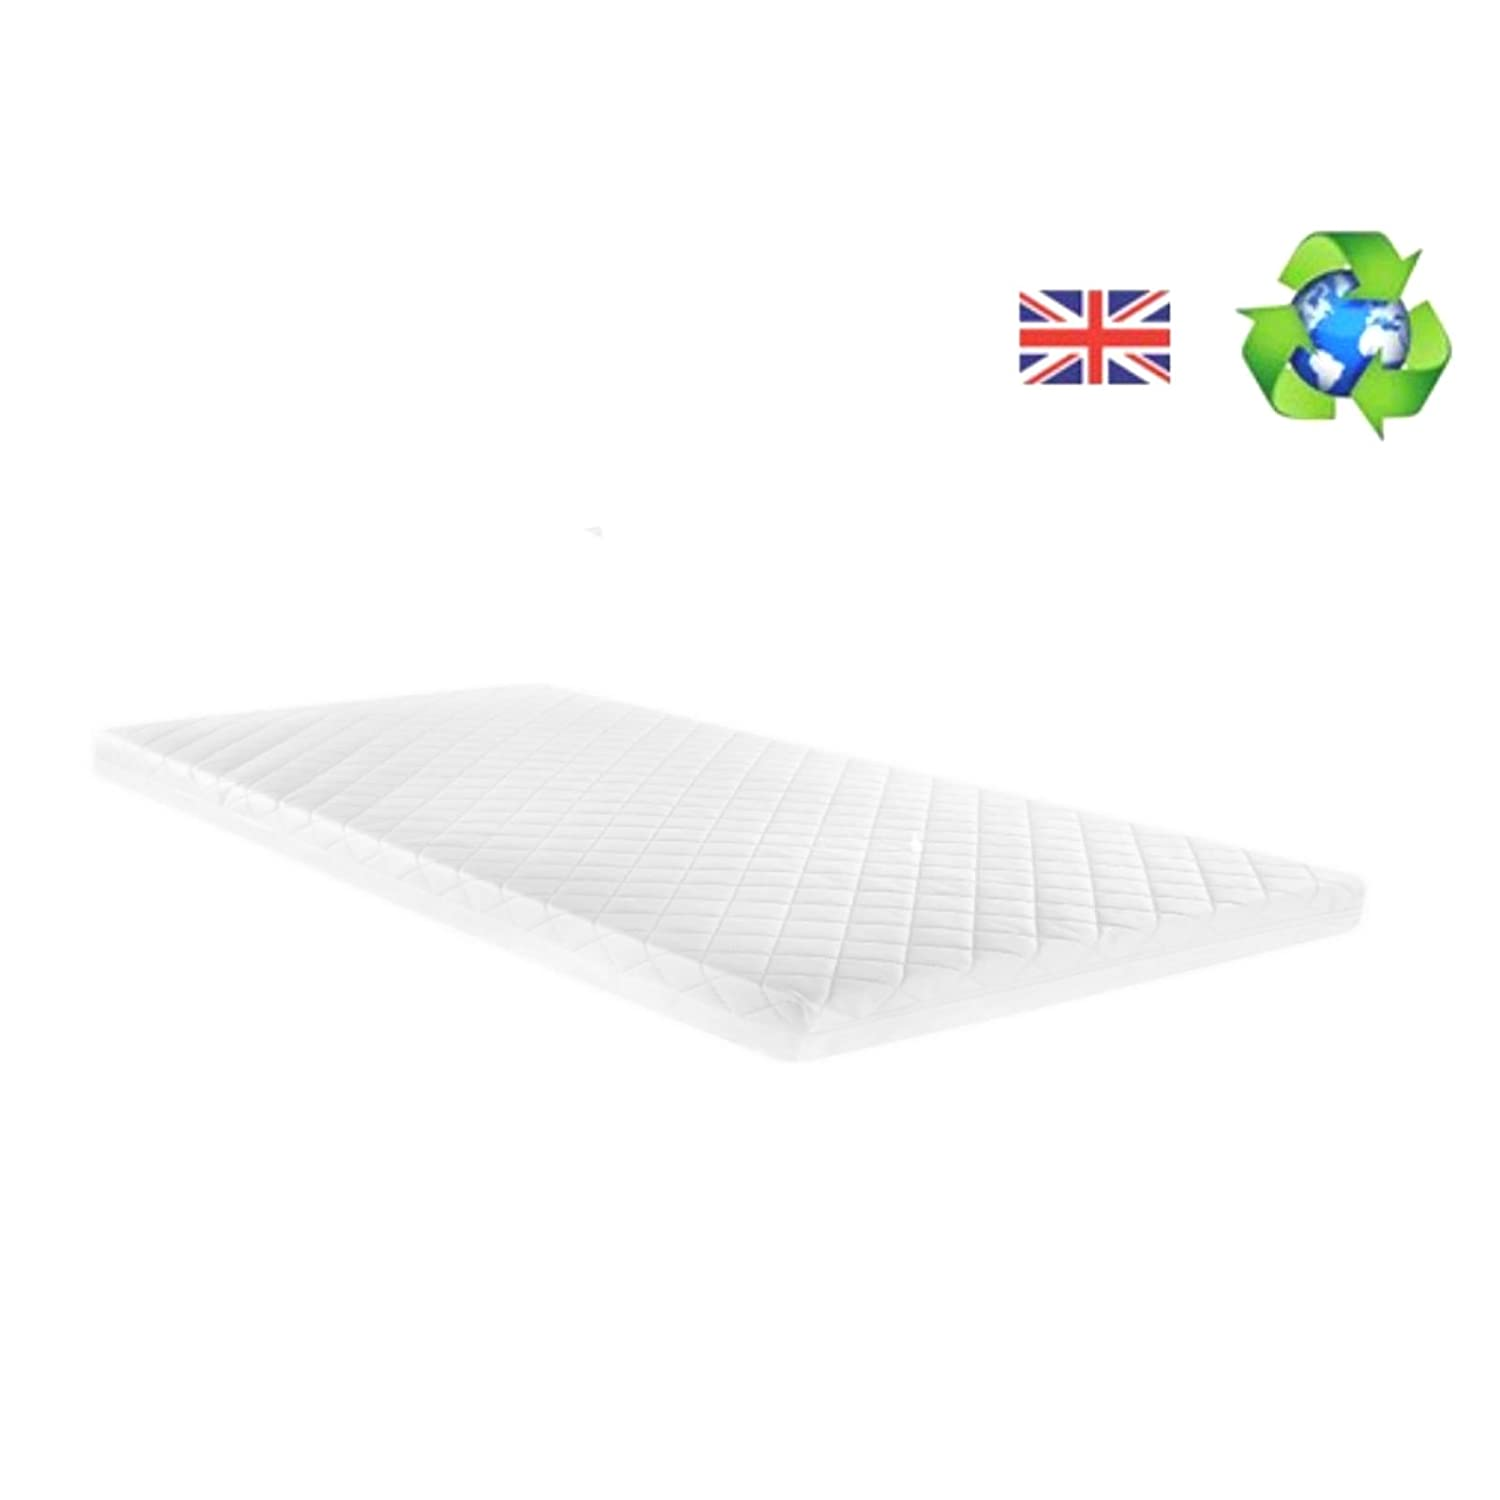 Chicco Next 2 Me Crib Hypoallergenic Deluxe Foam Quilted Mattress 83 x 50 x 5cm 4baby